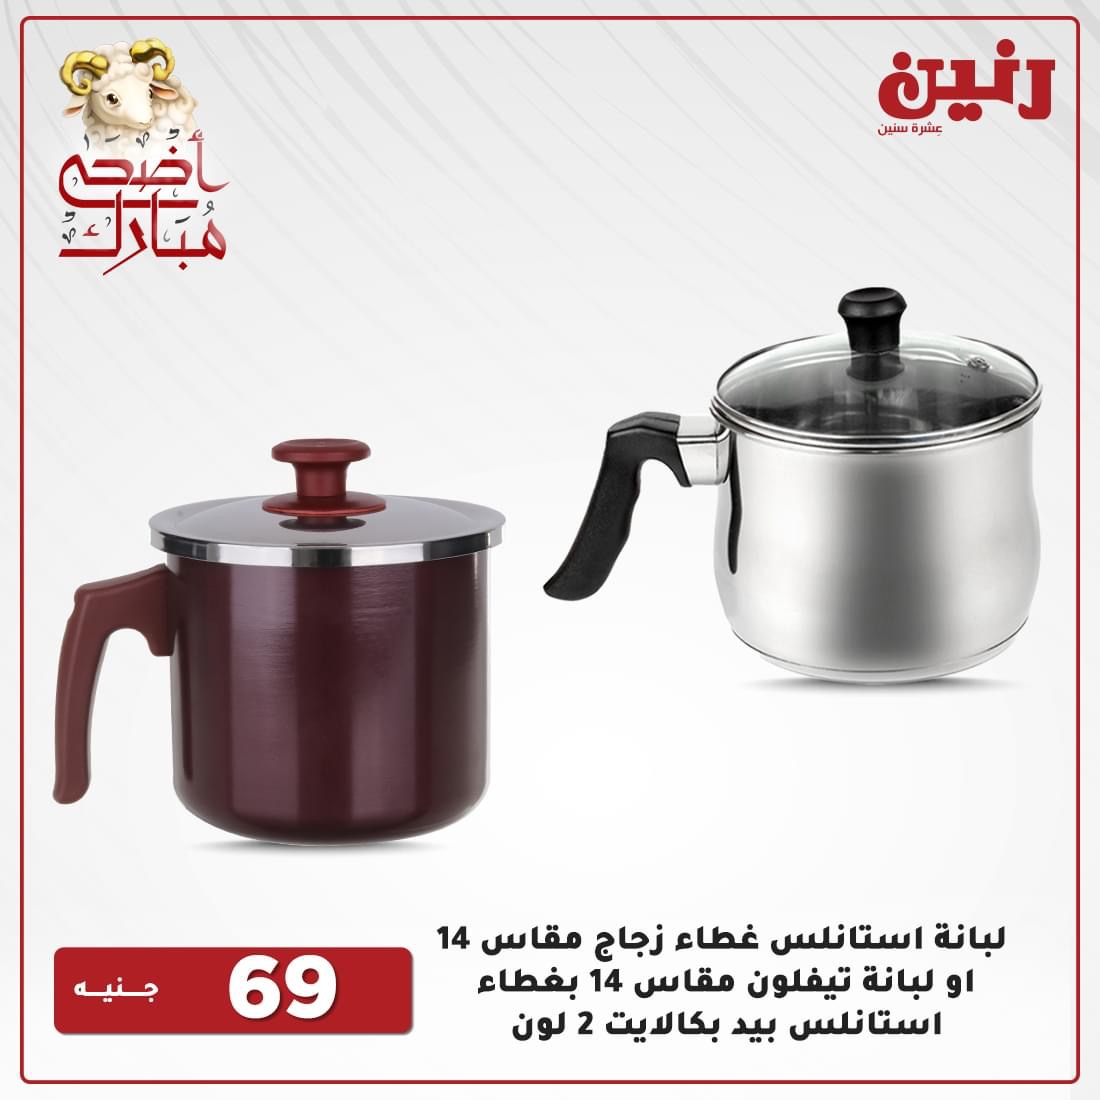 Raneen offers today for appliances and household appliances from July 22 to 24, 2021 27